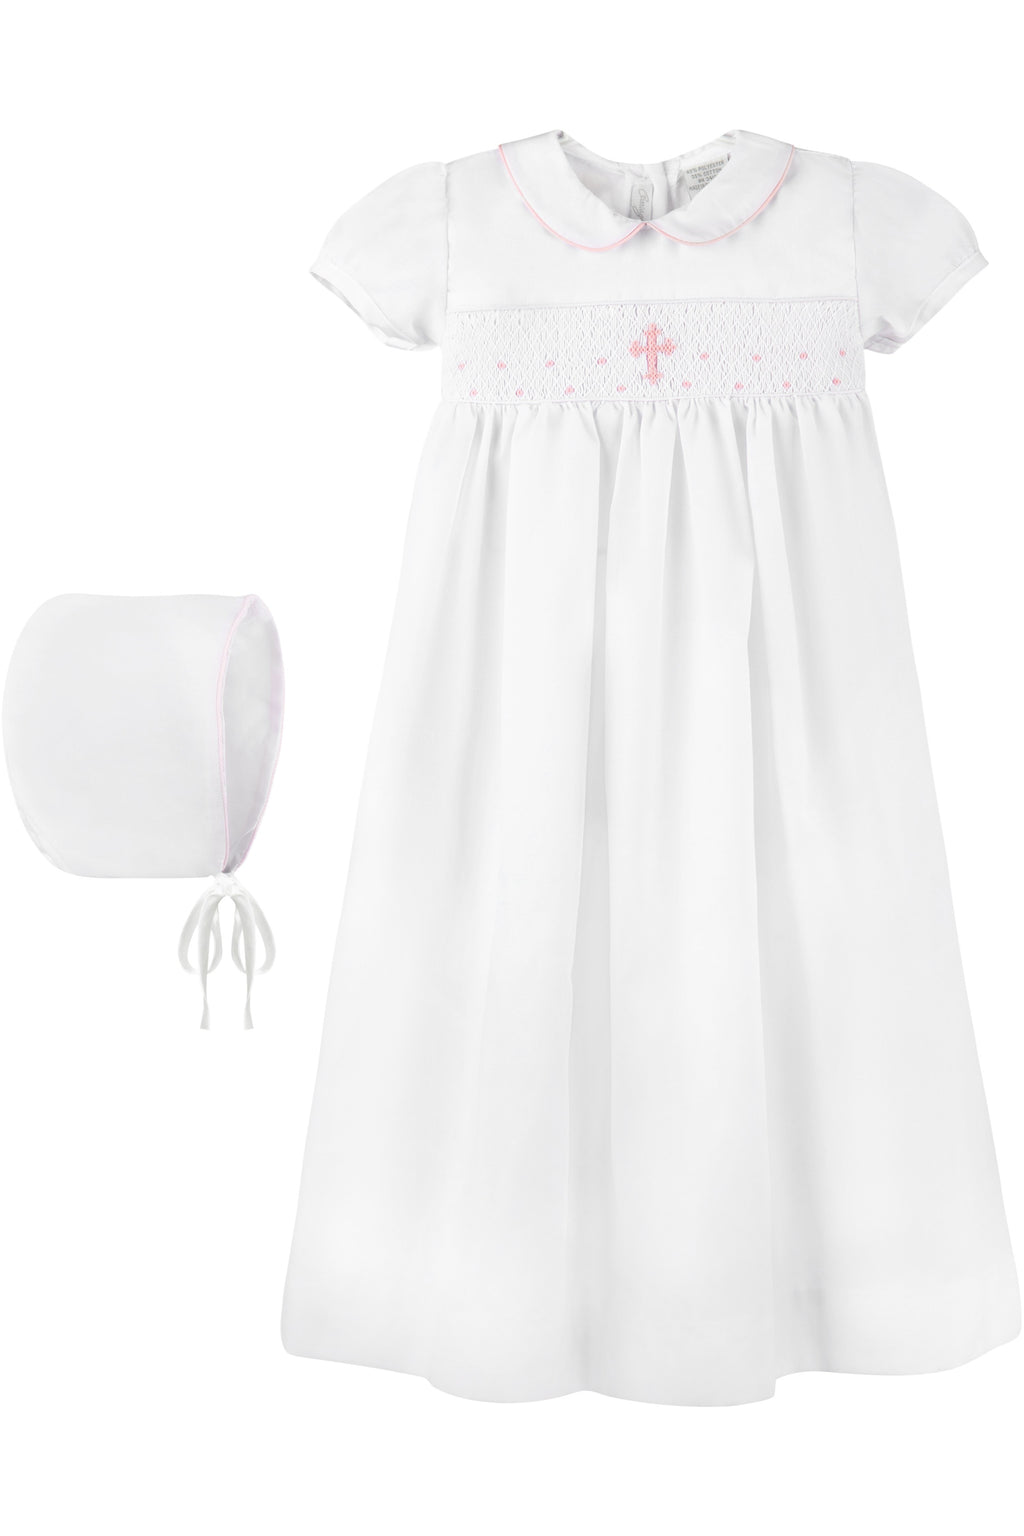 Baby Smocked Pink Cross Gown + Bonnet, , Carriage Boutique, Imagewear